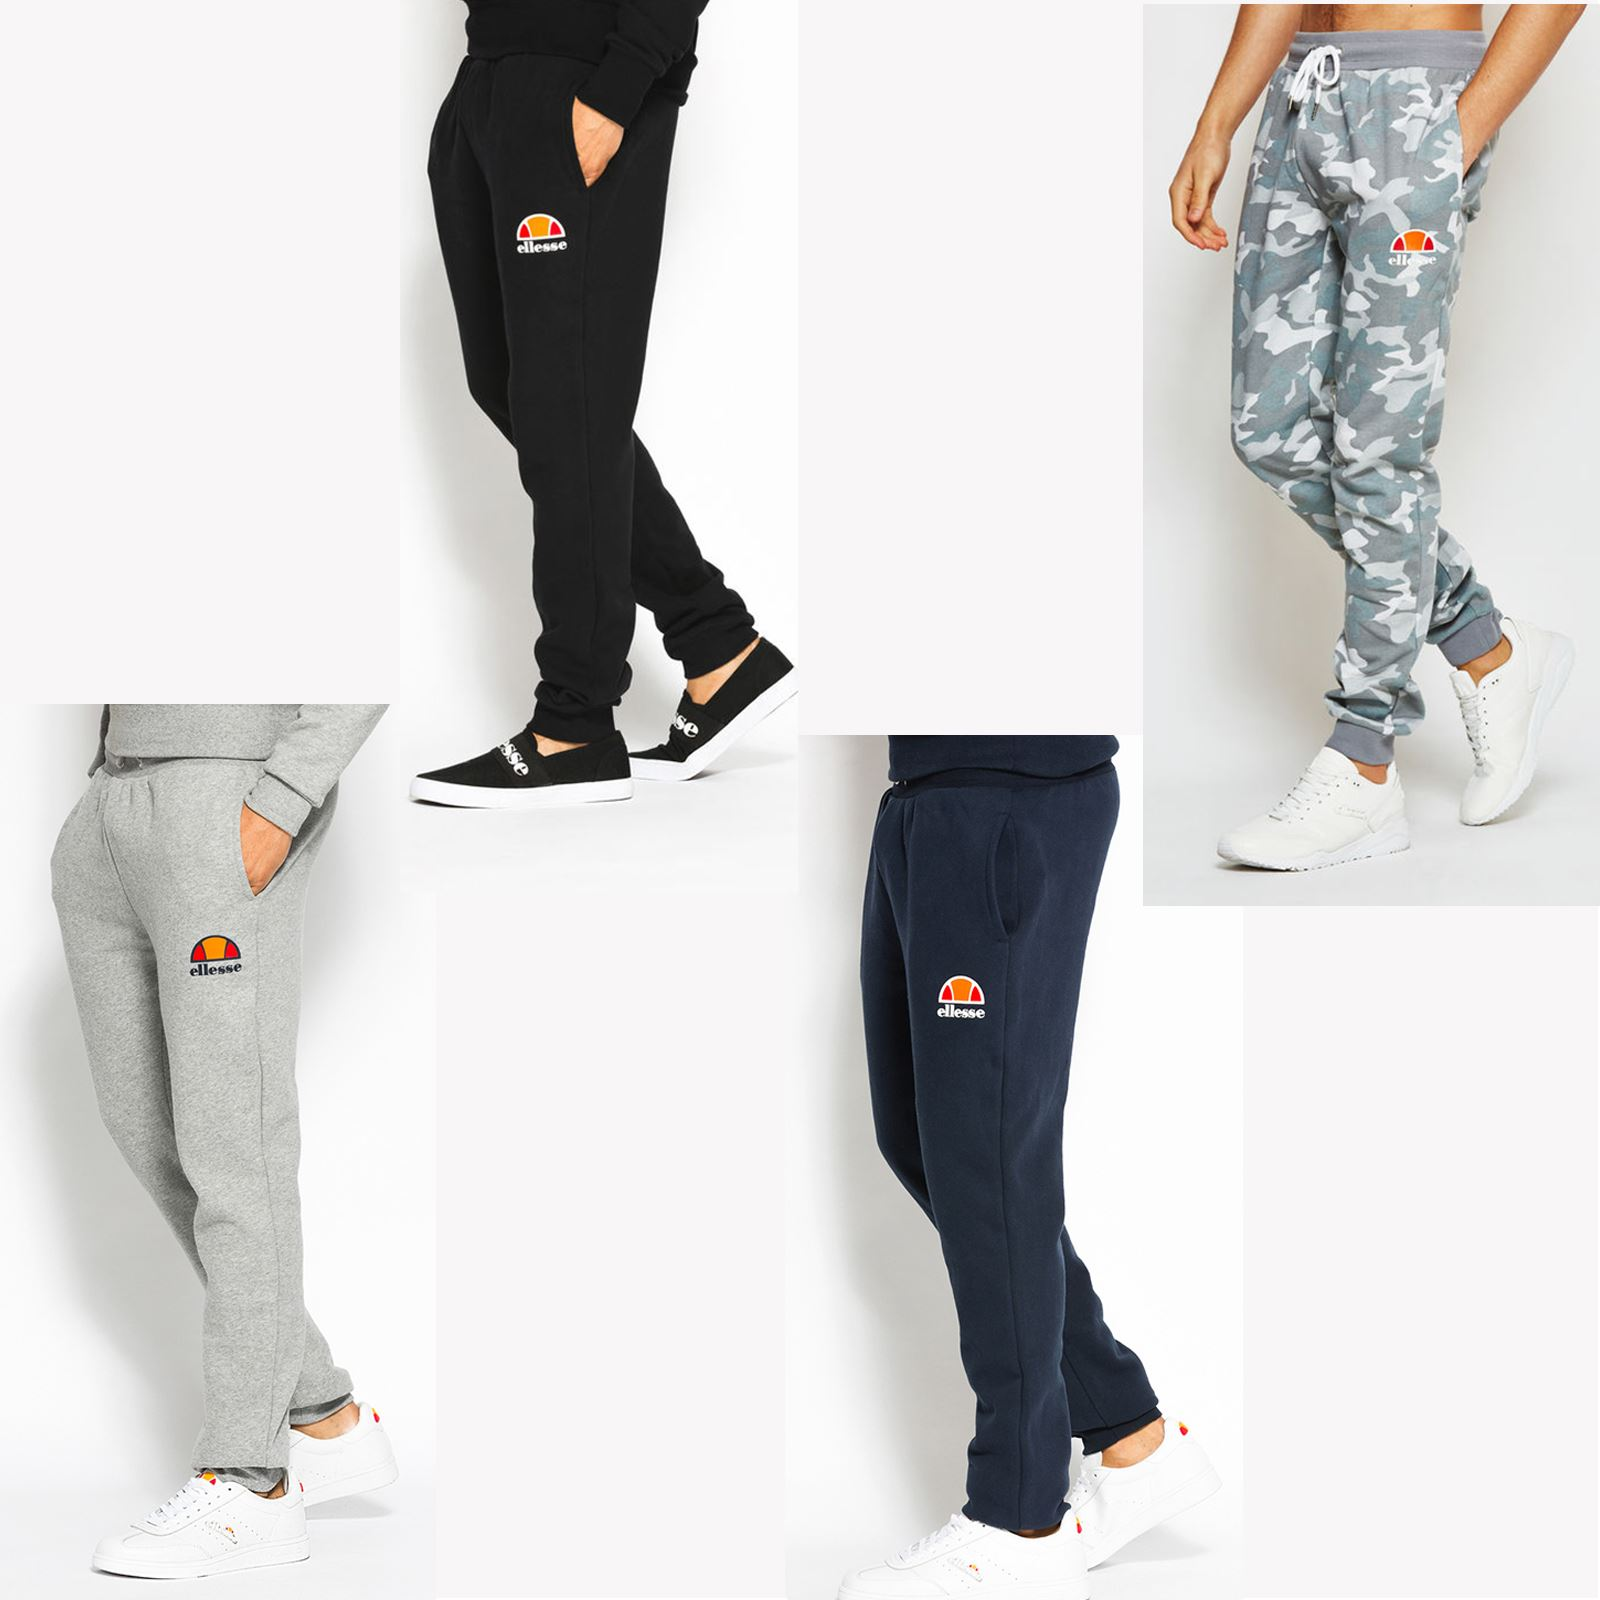 Details about Ellesse Ovest Men Jogging Bottoms Exercise Sweat Gym Track Pants Fleece Trousers